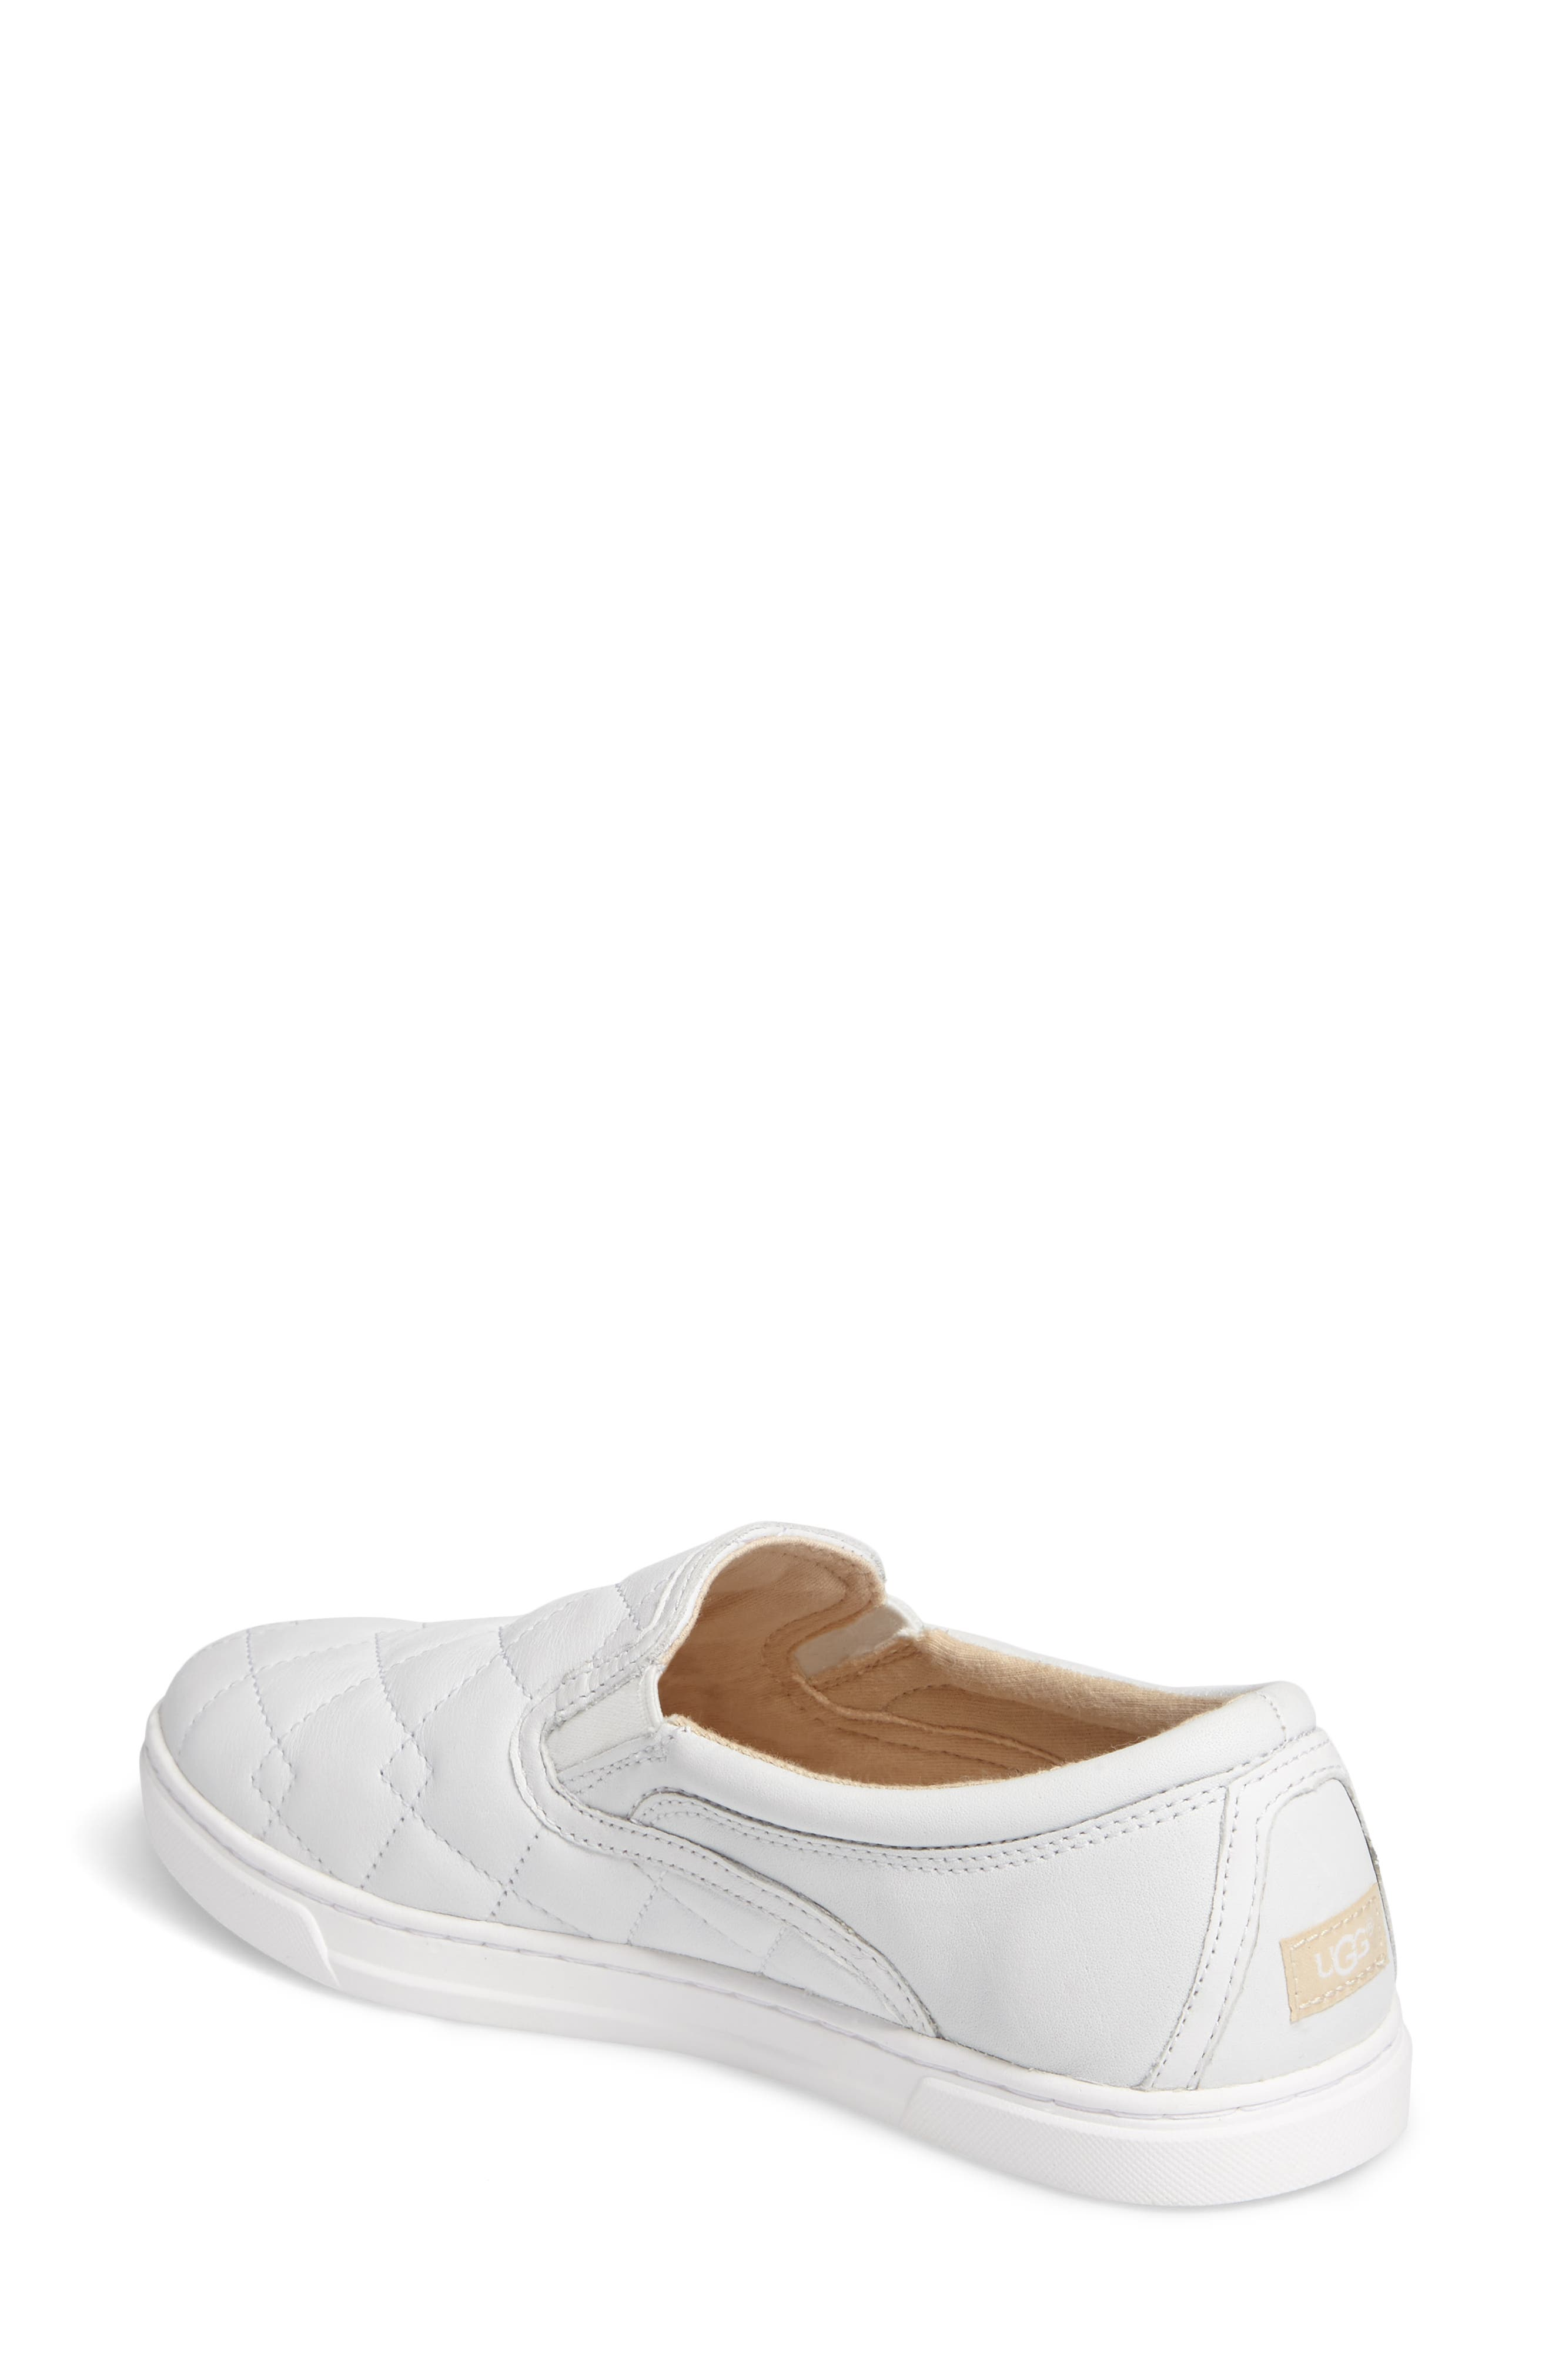 Fierce Deco Quilted Slip-On Sneaker,                             Alternate thumbnail 2, color,                             100